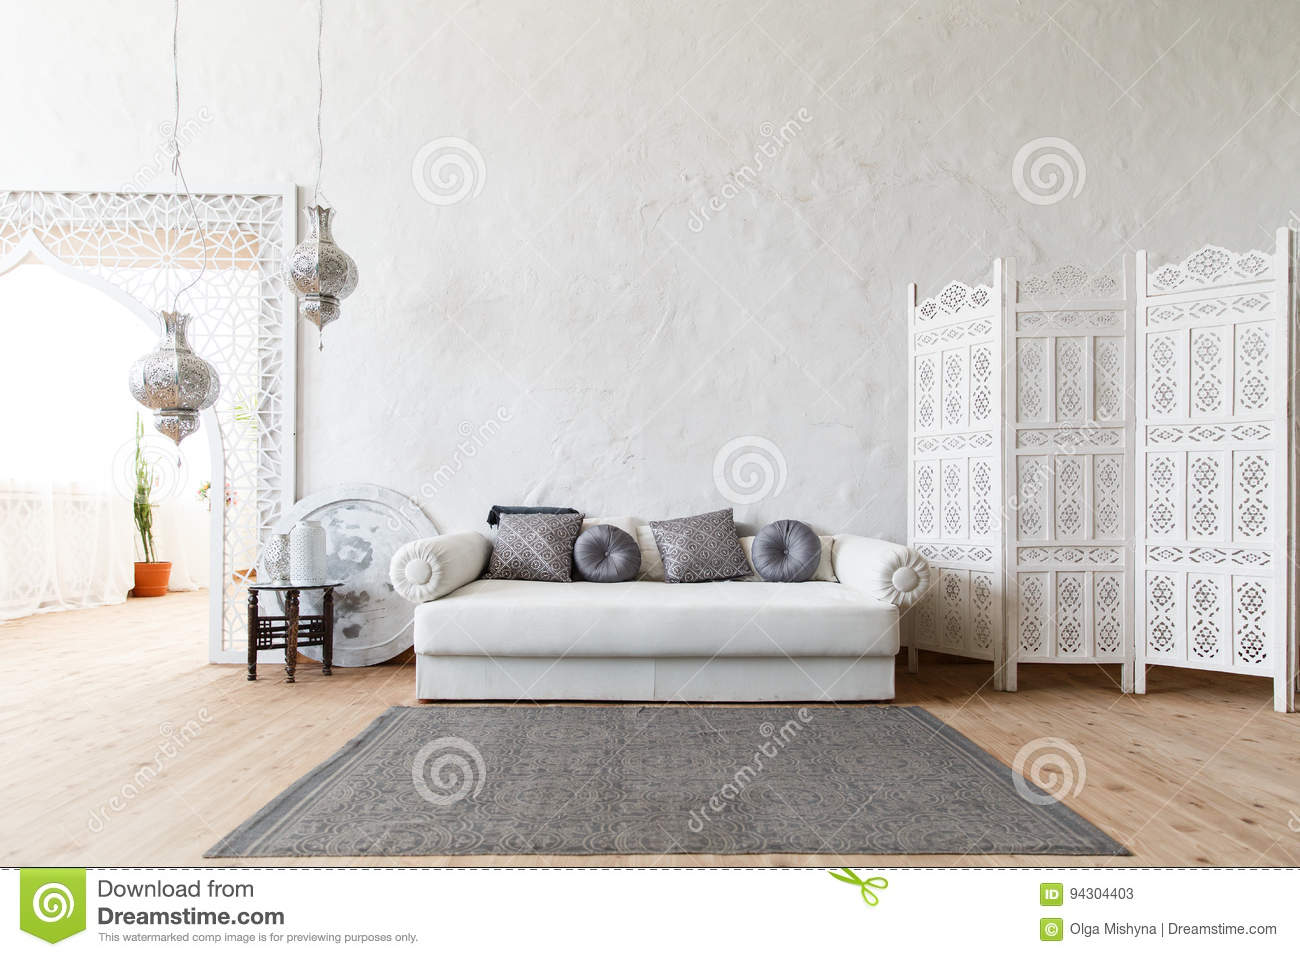 Eastern Traditional Interior. Morocco Style Room Stock Image - Image ...